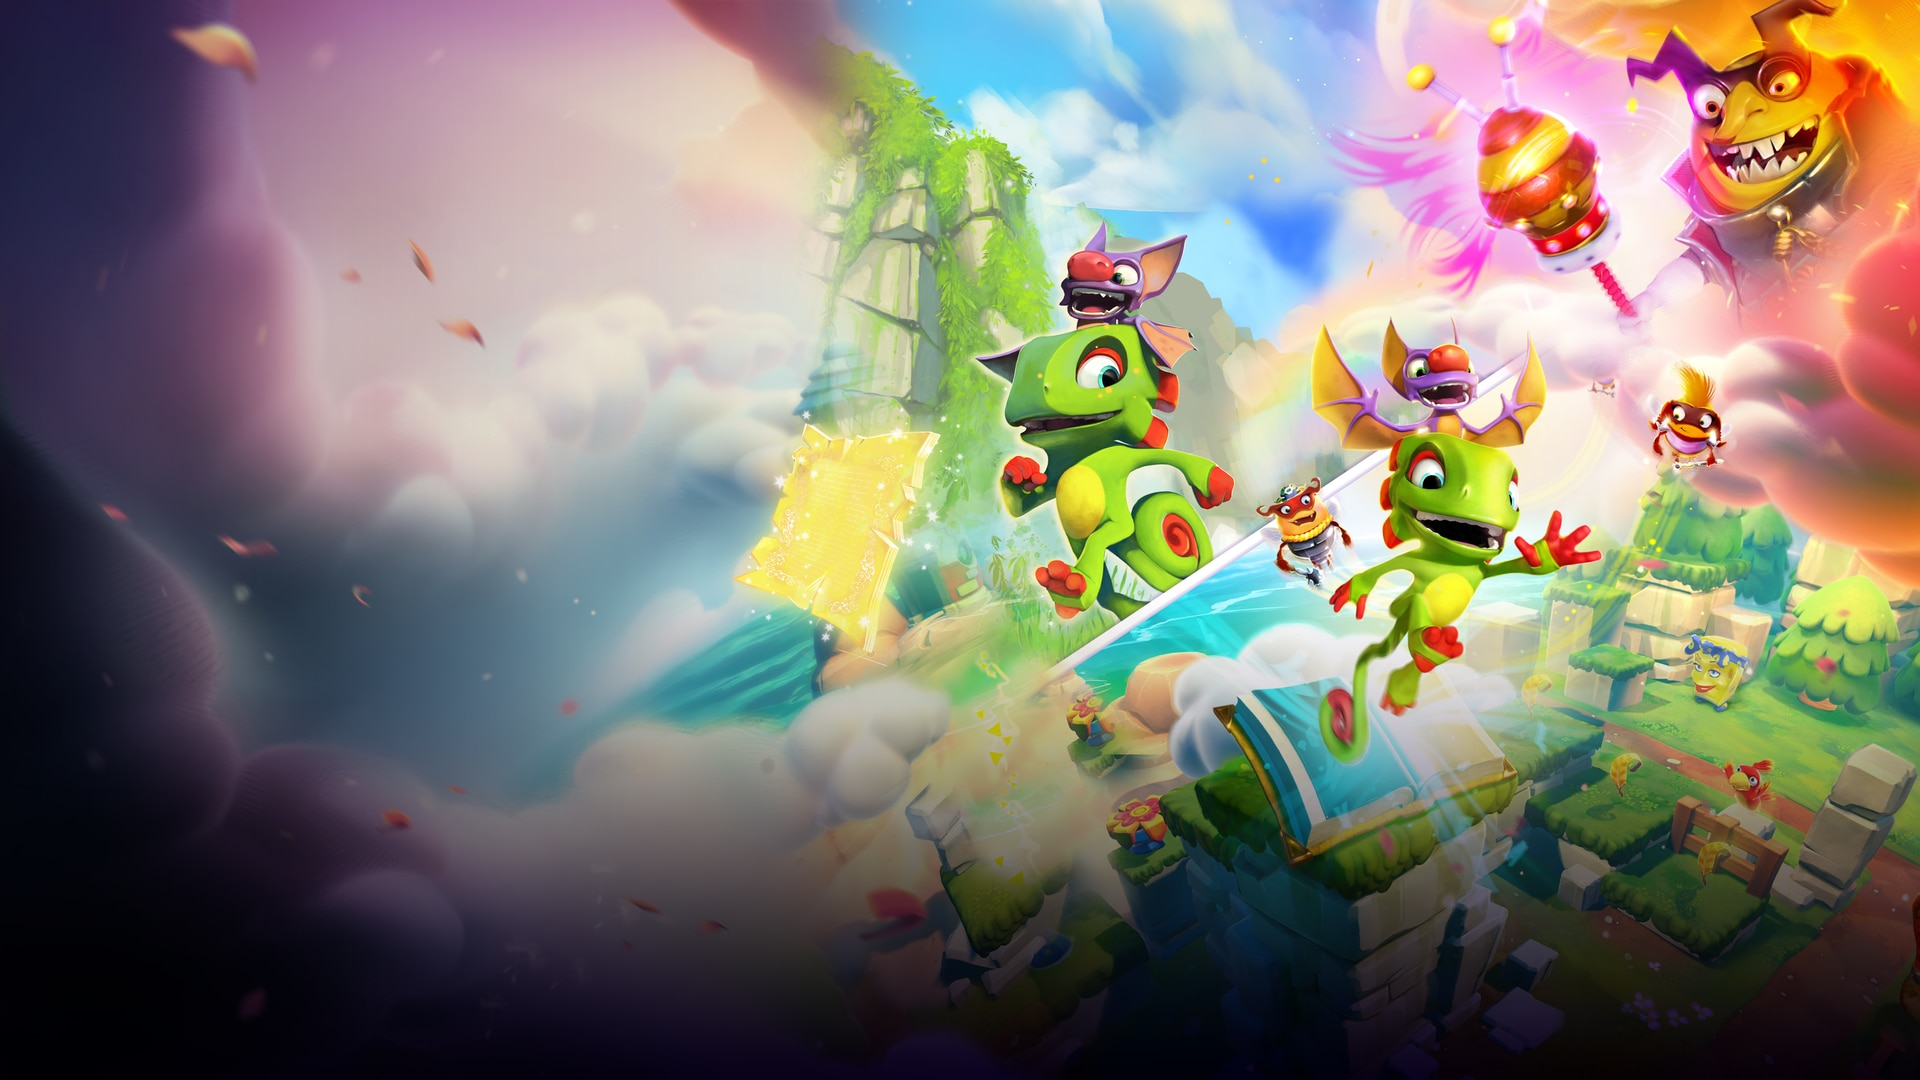 Yooka-Laylee: Buddy Duo Bundle